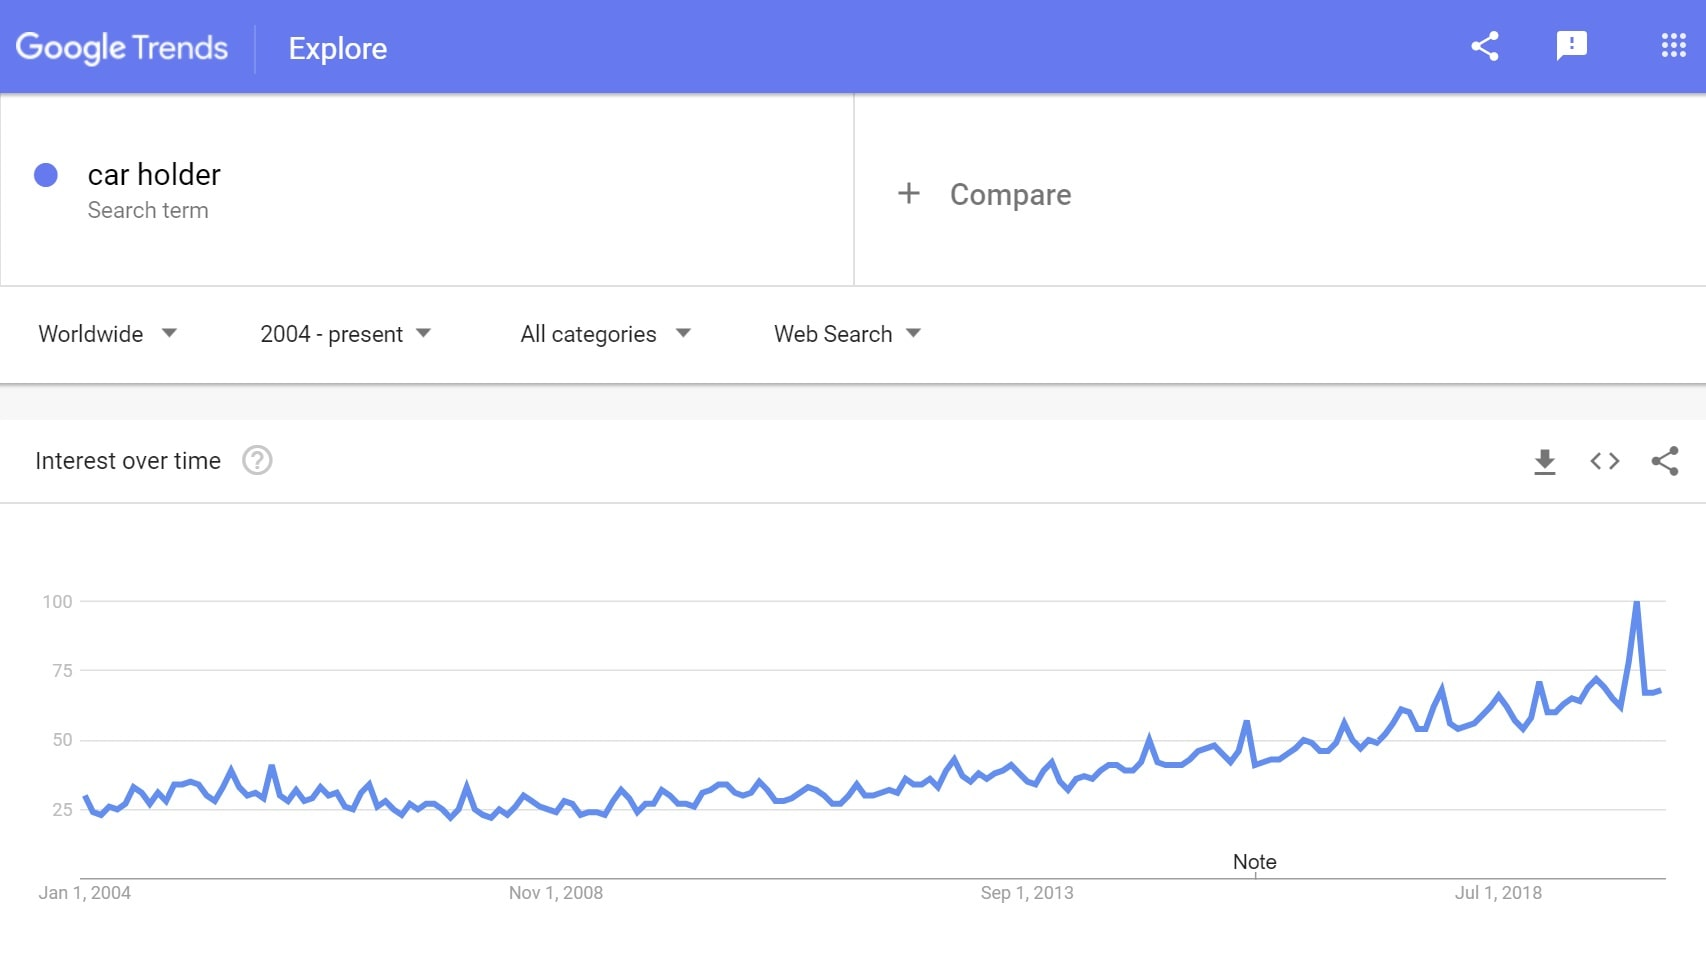 Google trends: Car holders to sell